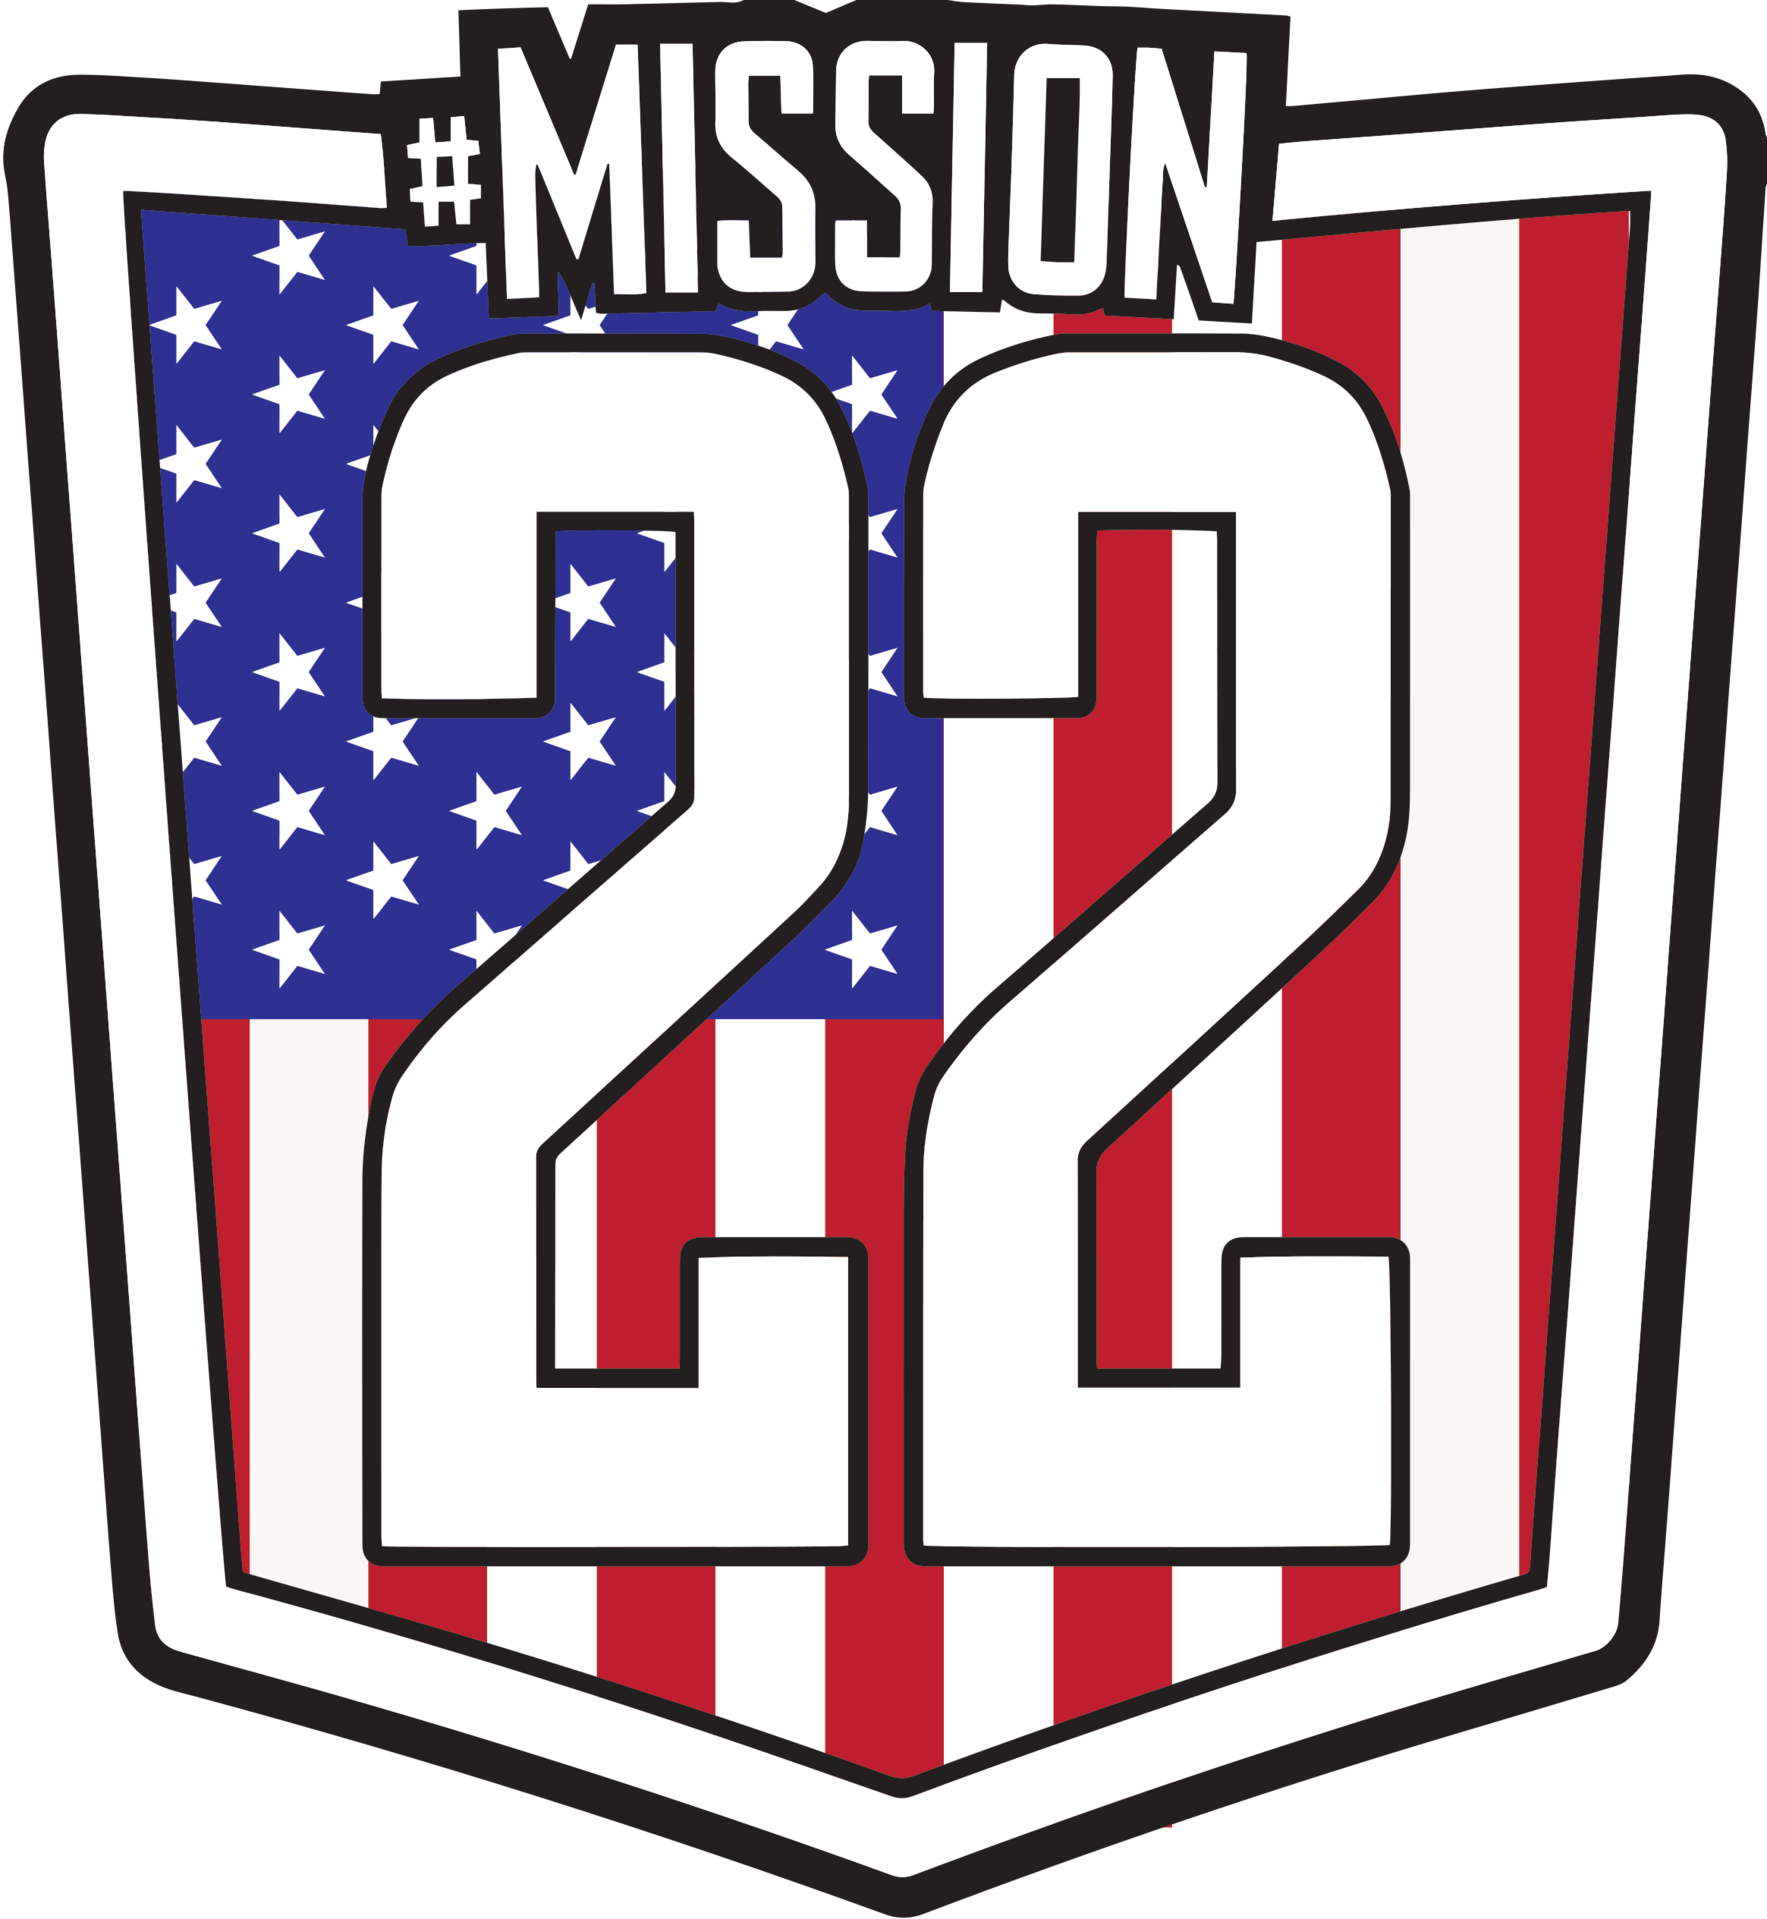 22 For 22 Hike For Veteran Suicide Awareness image